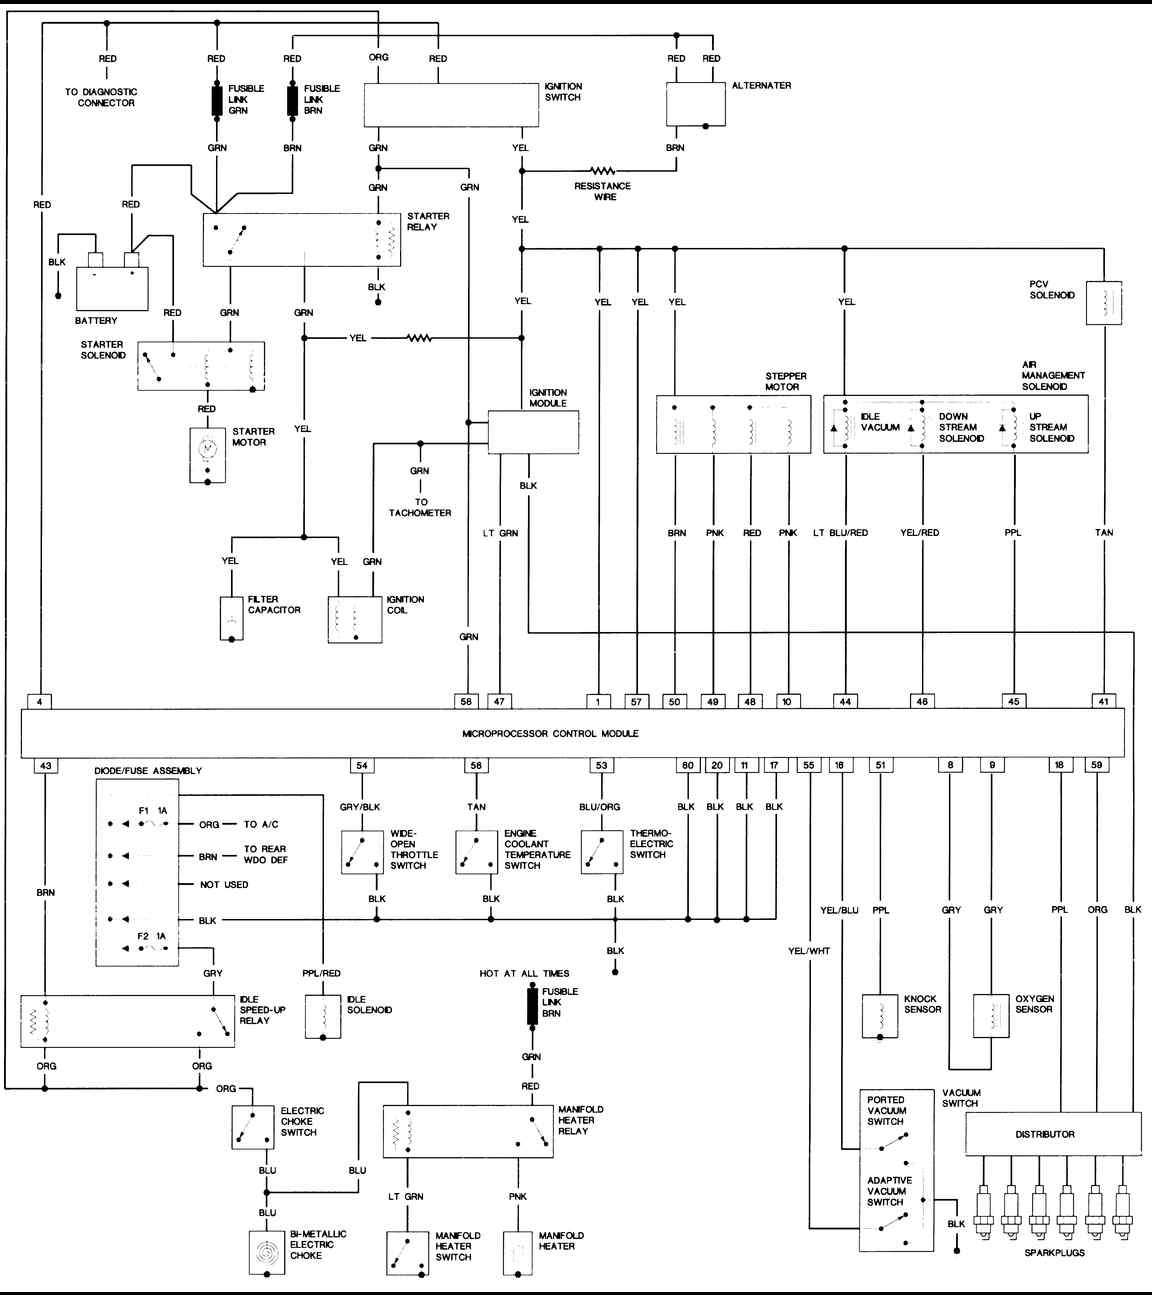 wrangler wiring diagram wiring diagrams online description m38 wiring schematic m38 trailer wiring diagram for auto on 1987 jeep wiring schematic